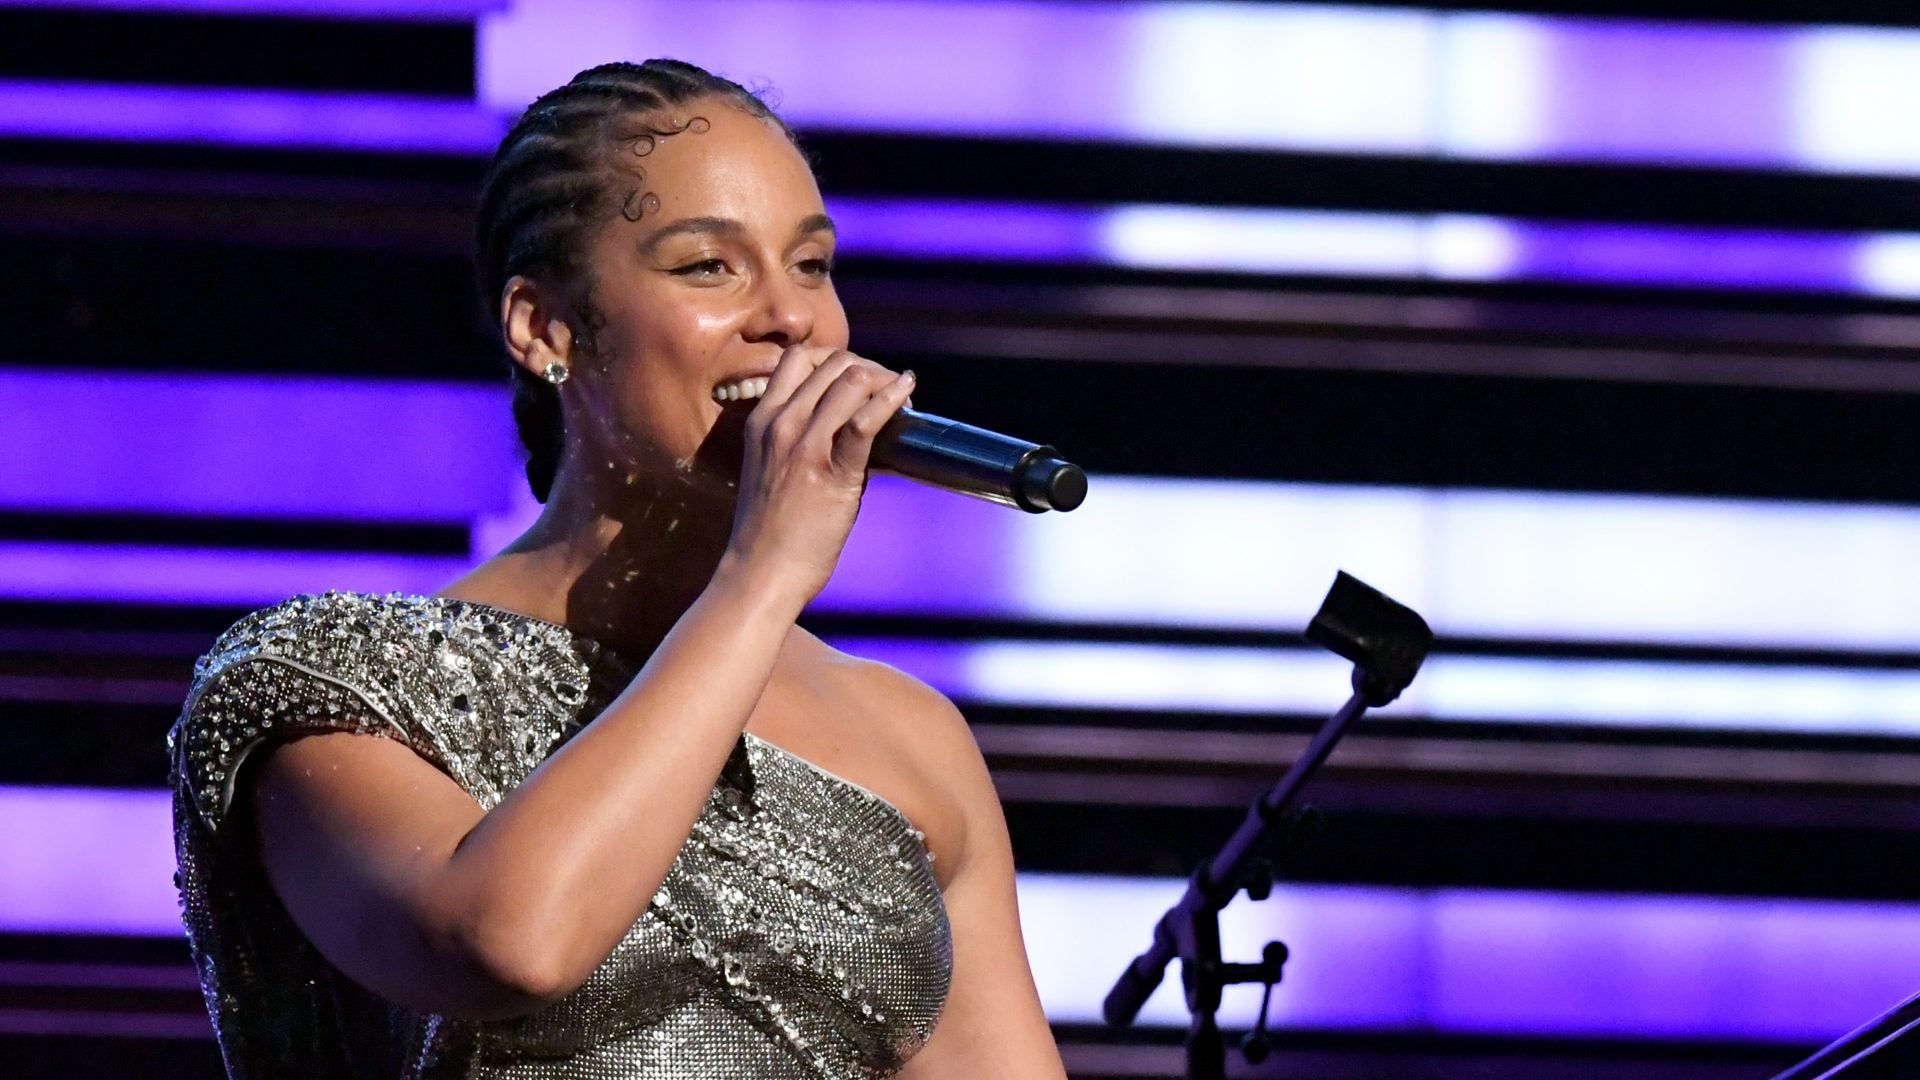 Every Single Outfit Alicia Keys Wore Hosting The Grammys